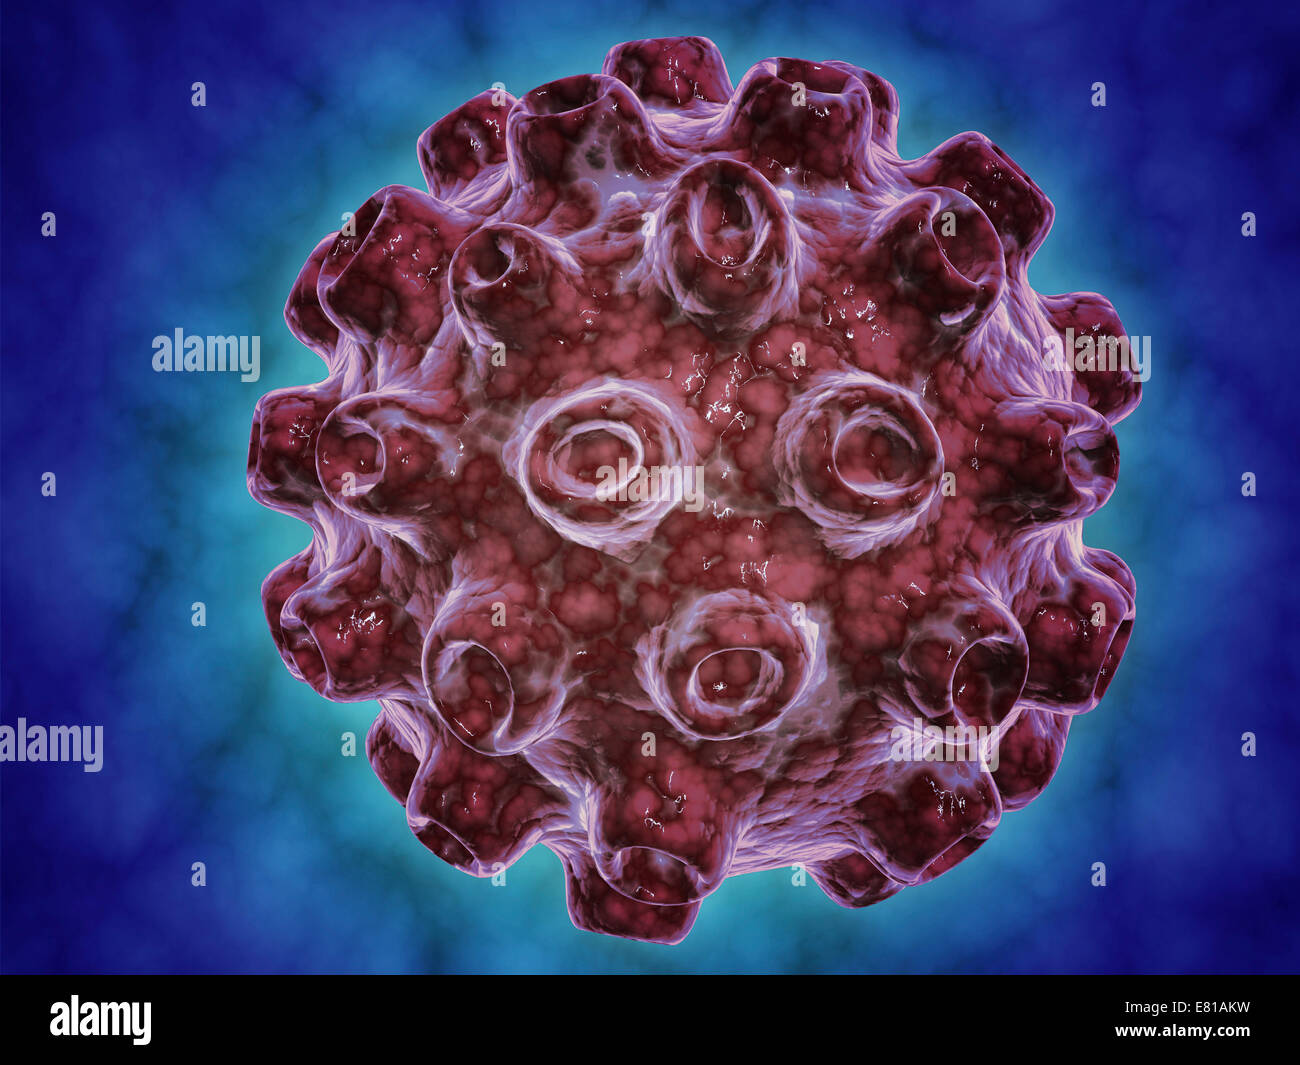 Conceptual image of Encephalitis. Encephalitis can cause flu-like symptoms, such as a fever or severe headaches. - Stock Image